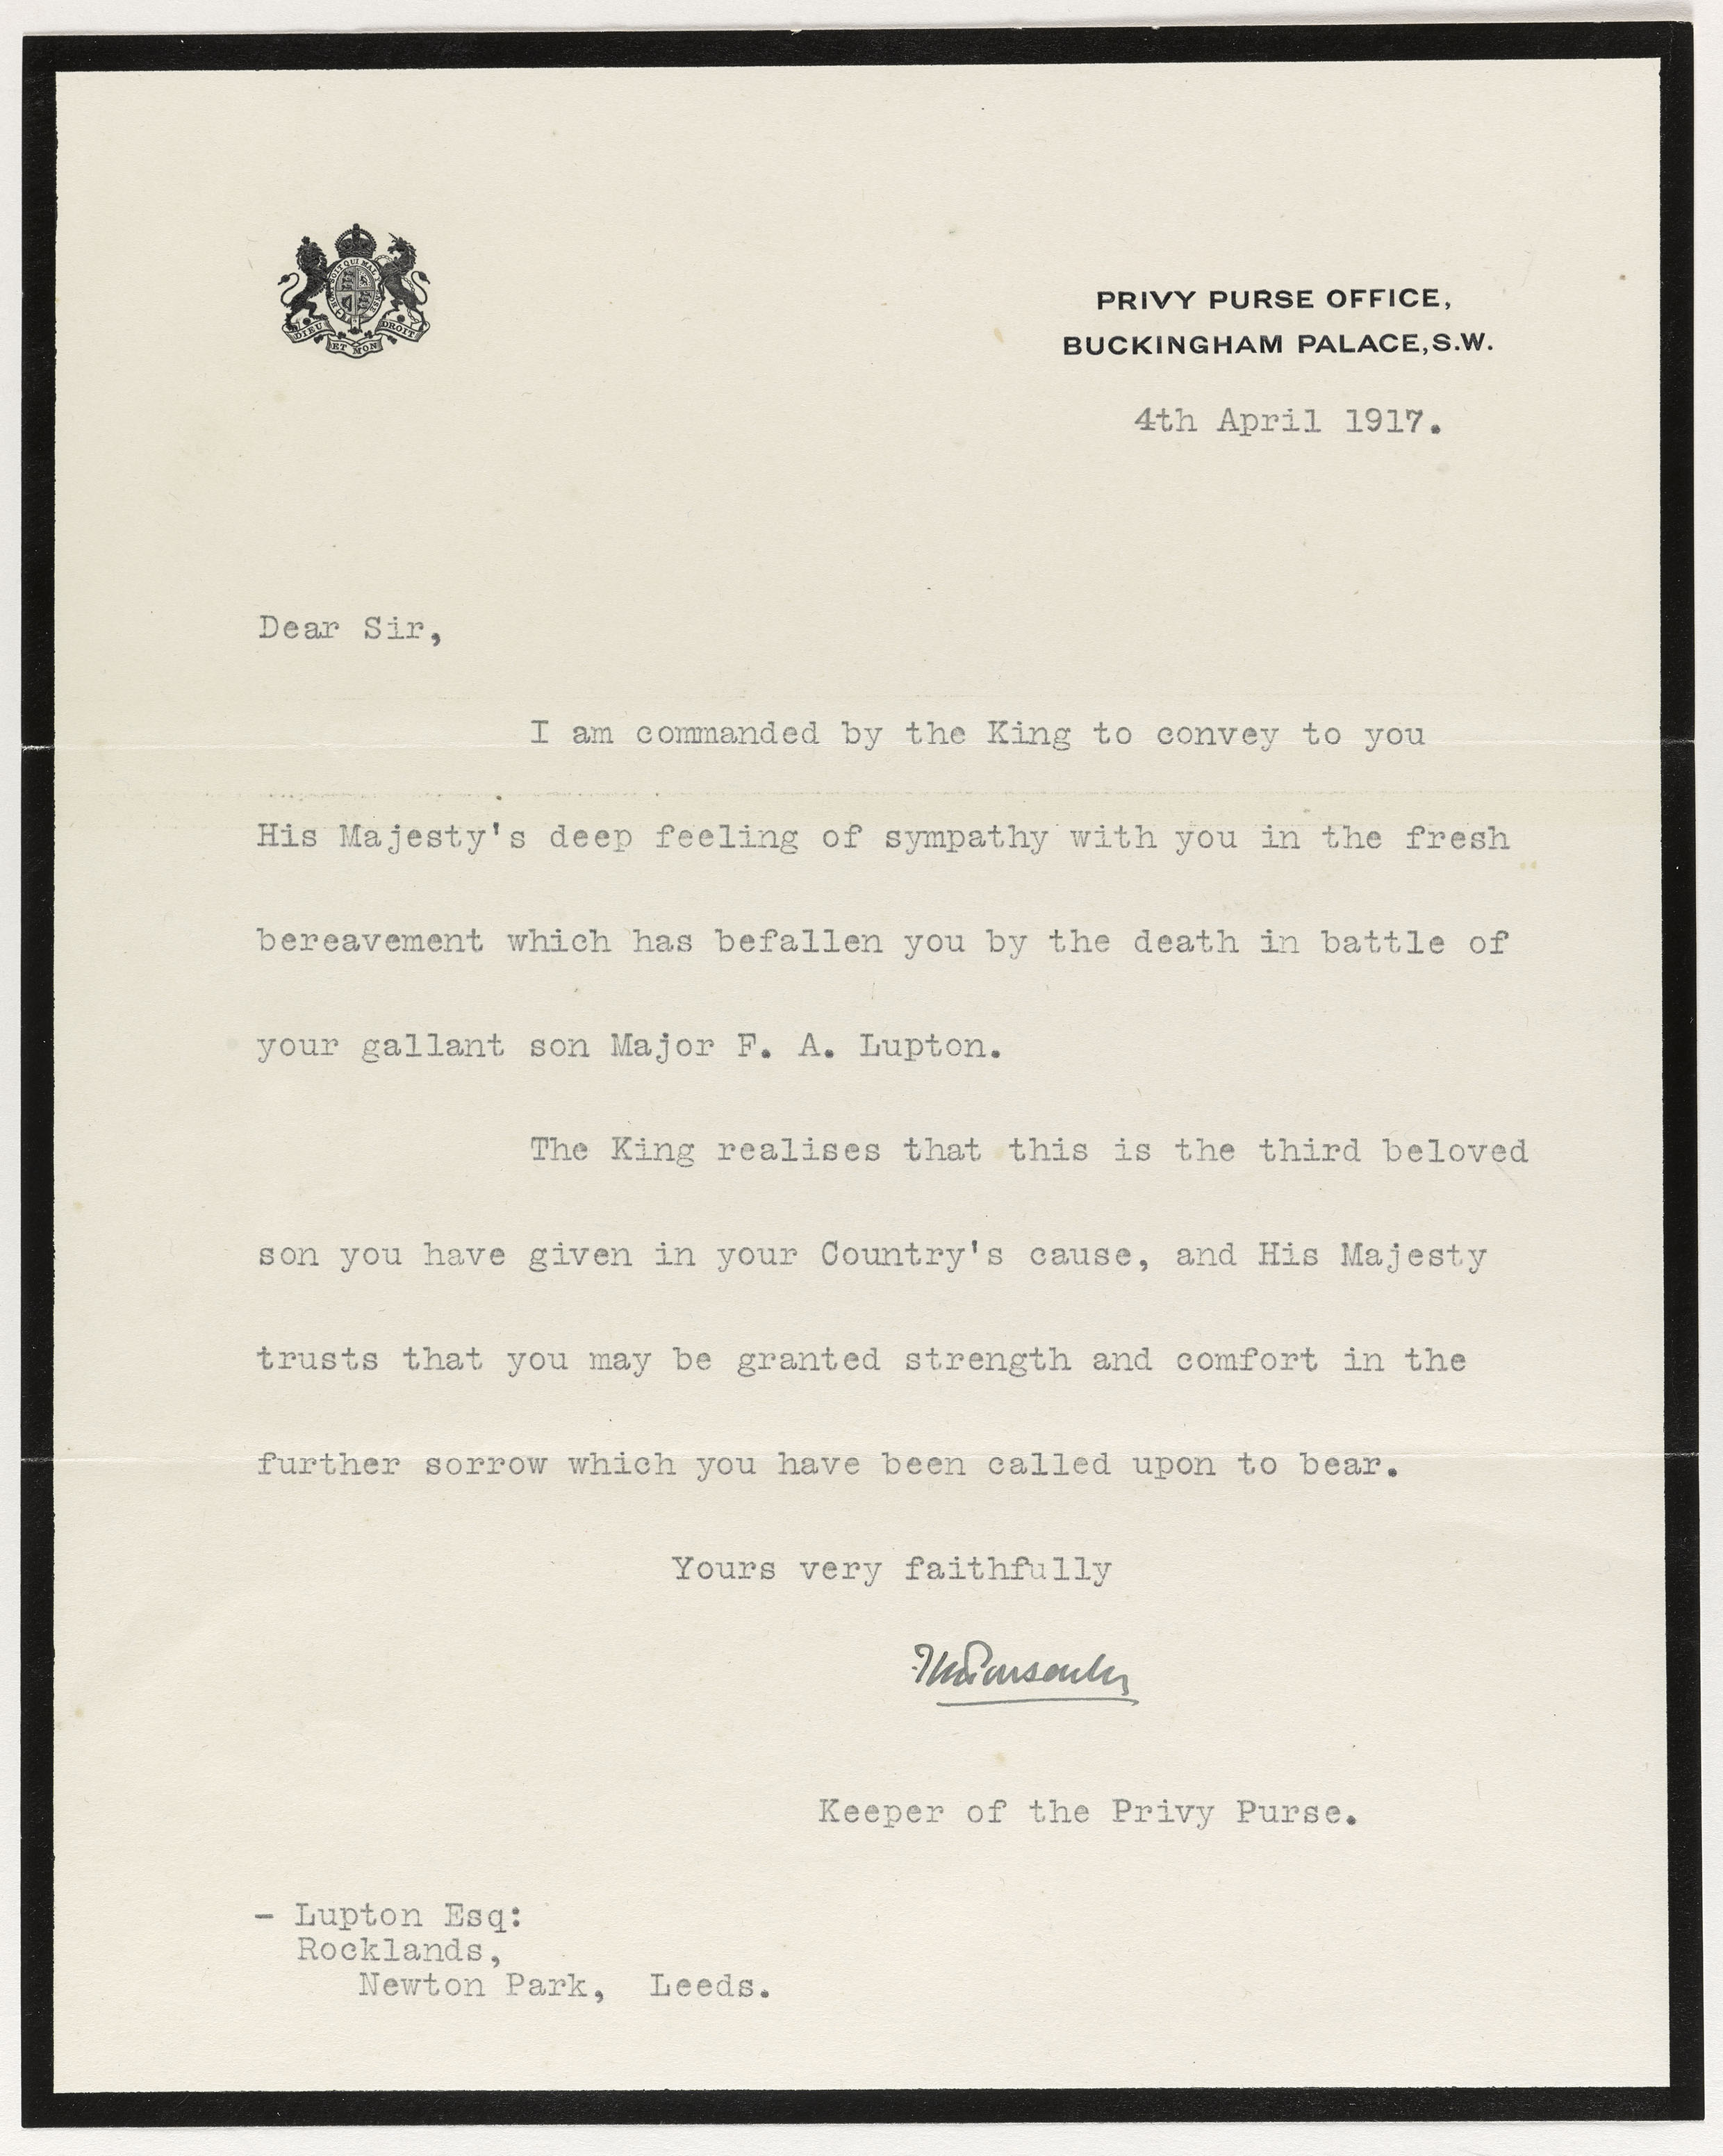 A Letter from the the Privy Purse